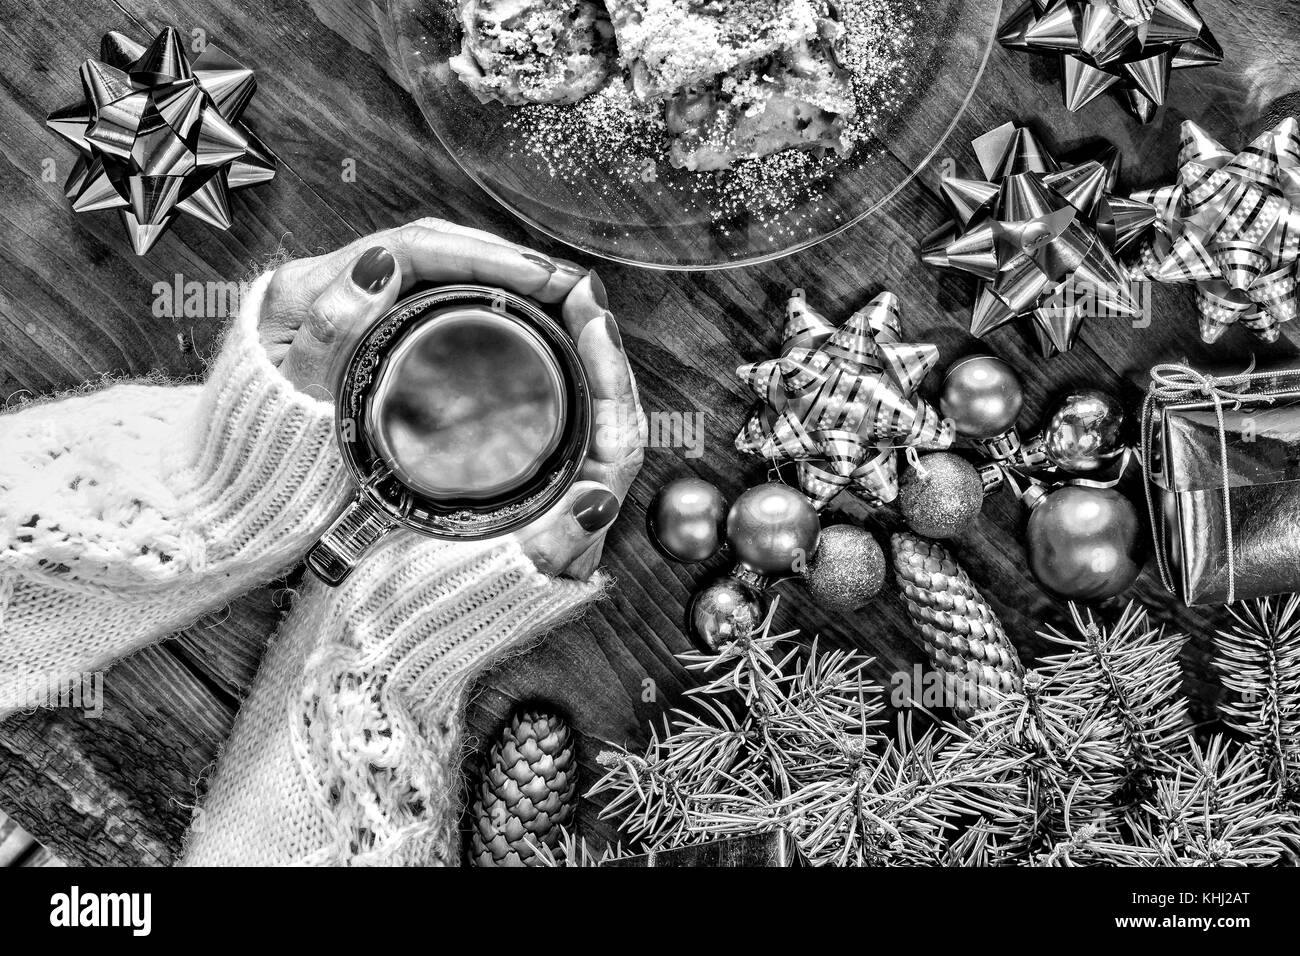 Black And White Christmas New Year Christmas Tree Ornaments A Cup Stock Photo Alamy